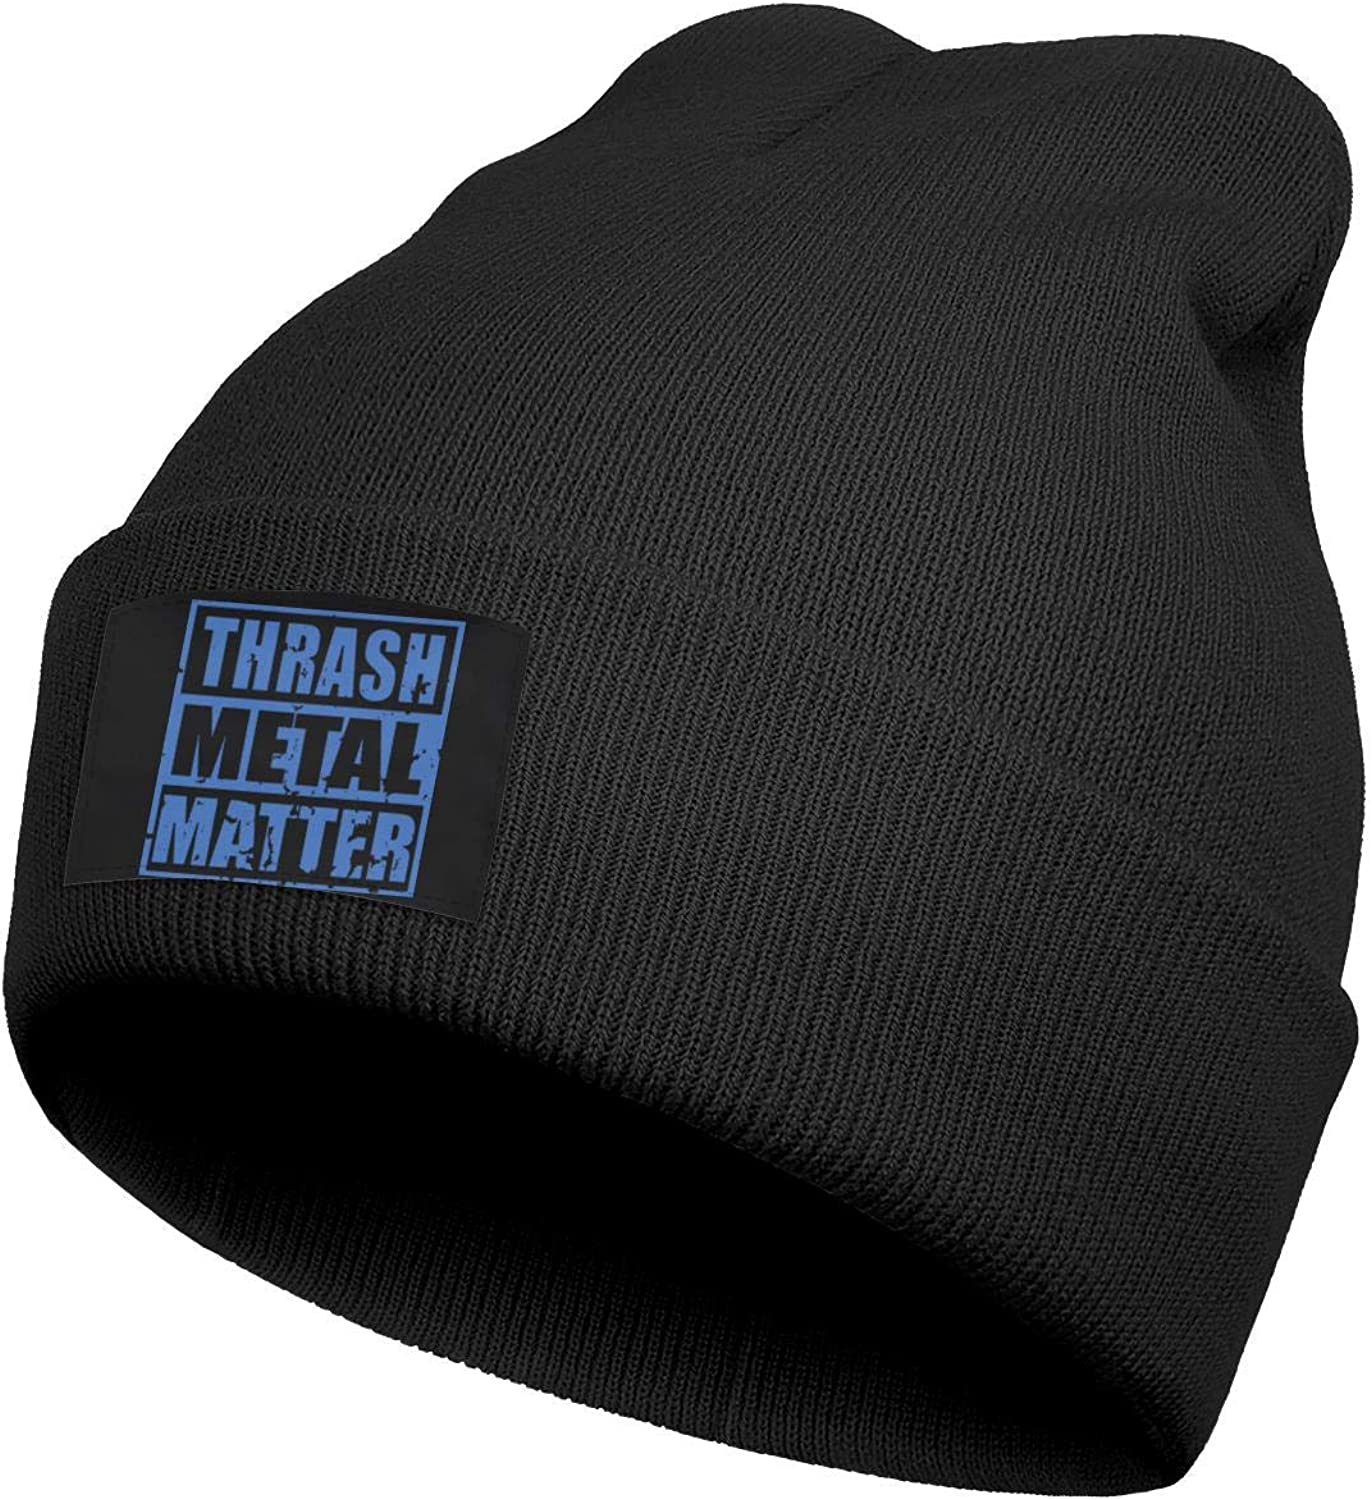 MGZT MGZT-T MG Beanie Skull Hat Choice of Colours /& Designs Brand New